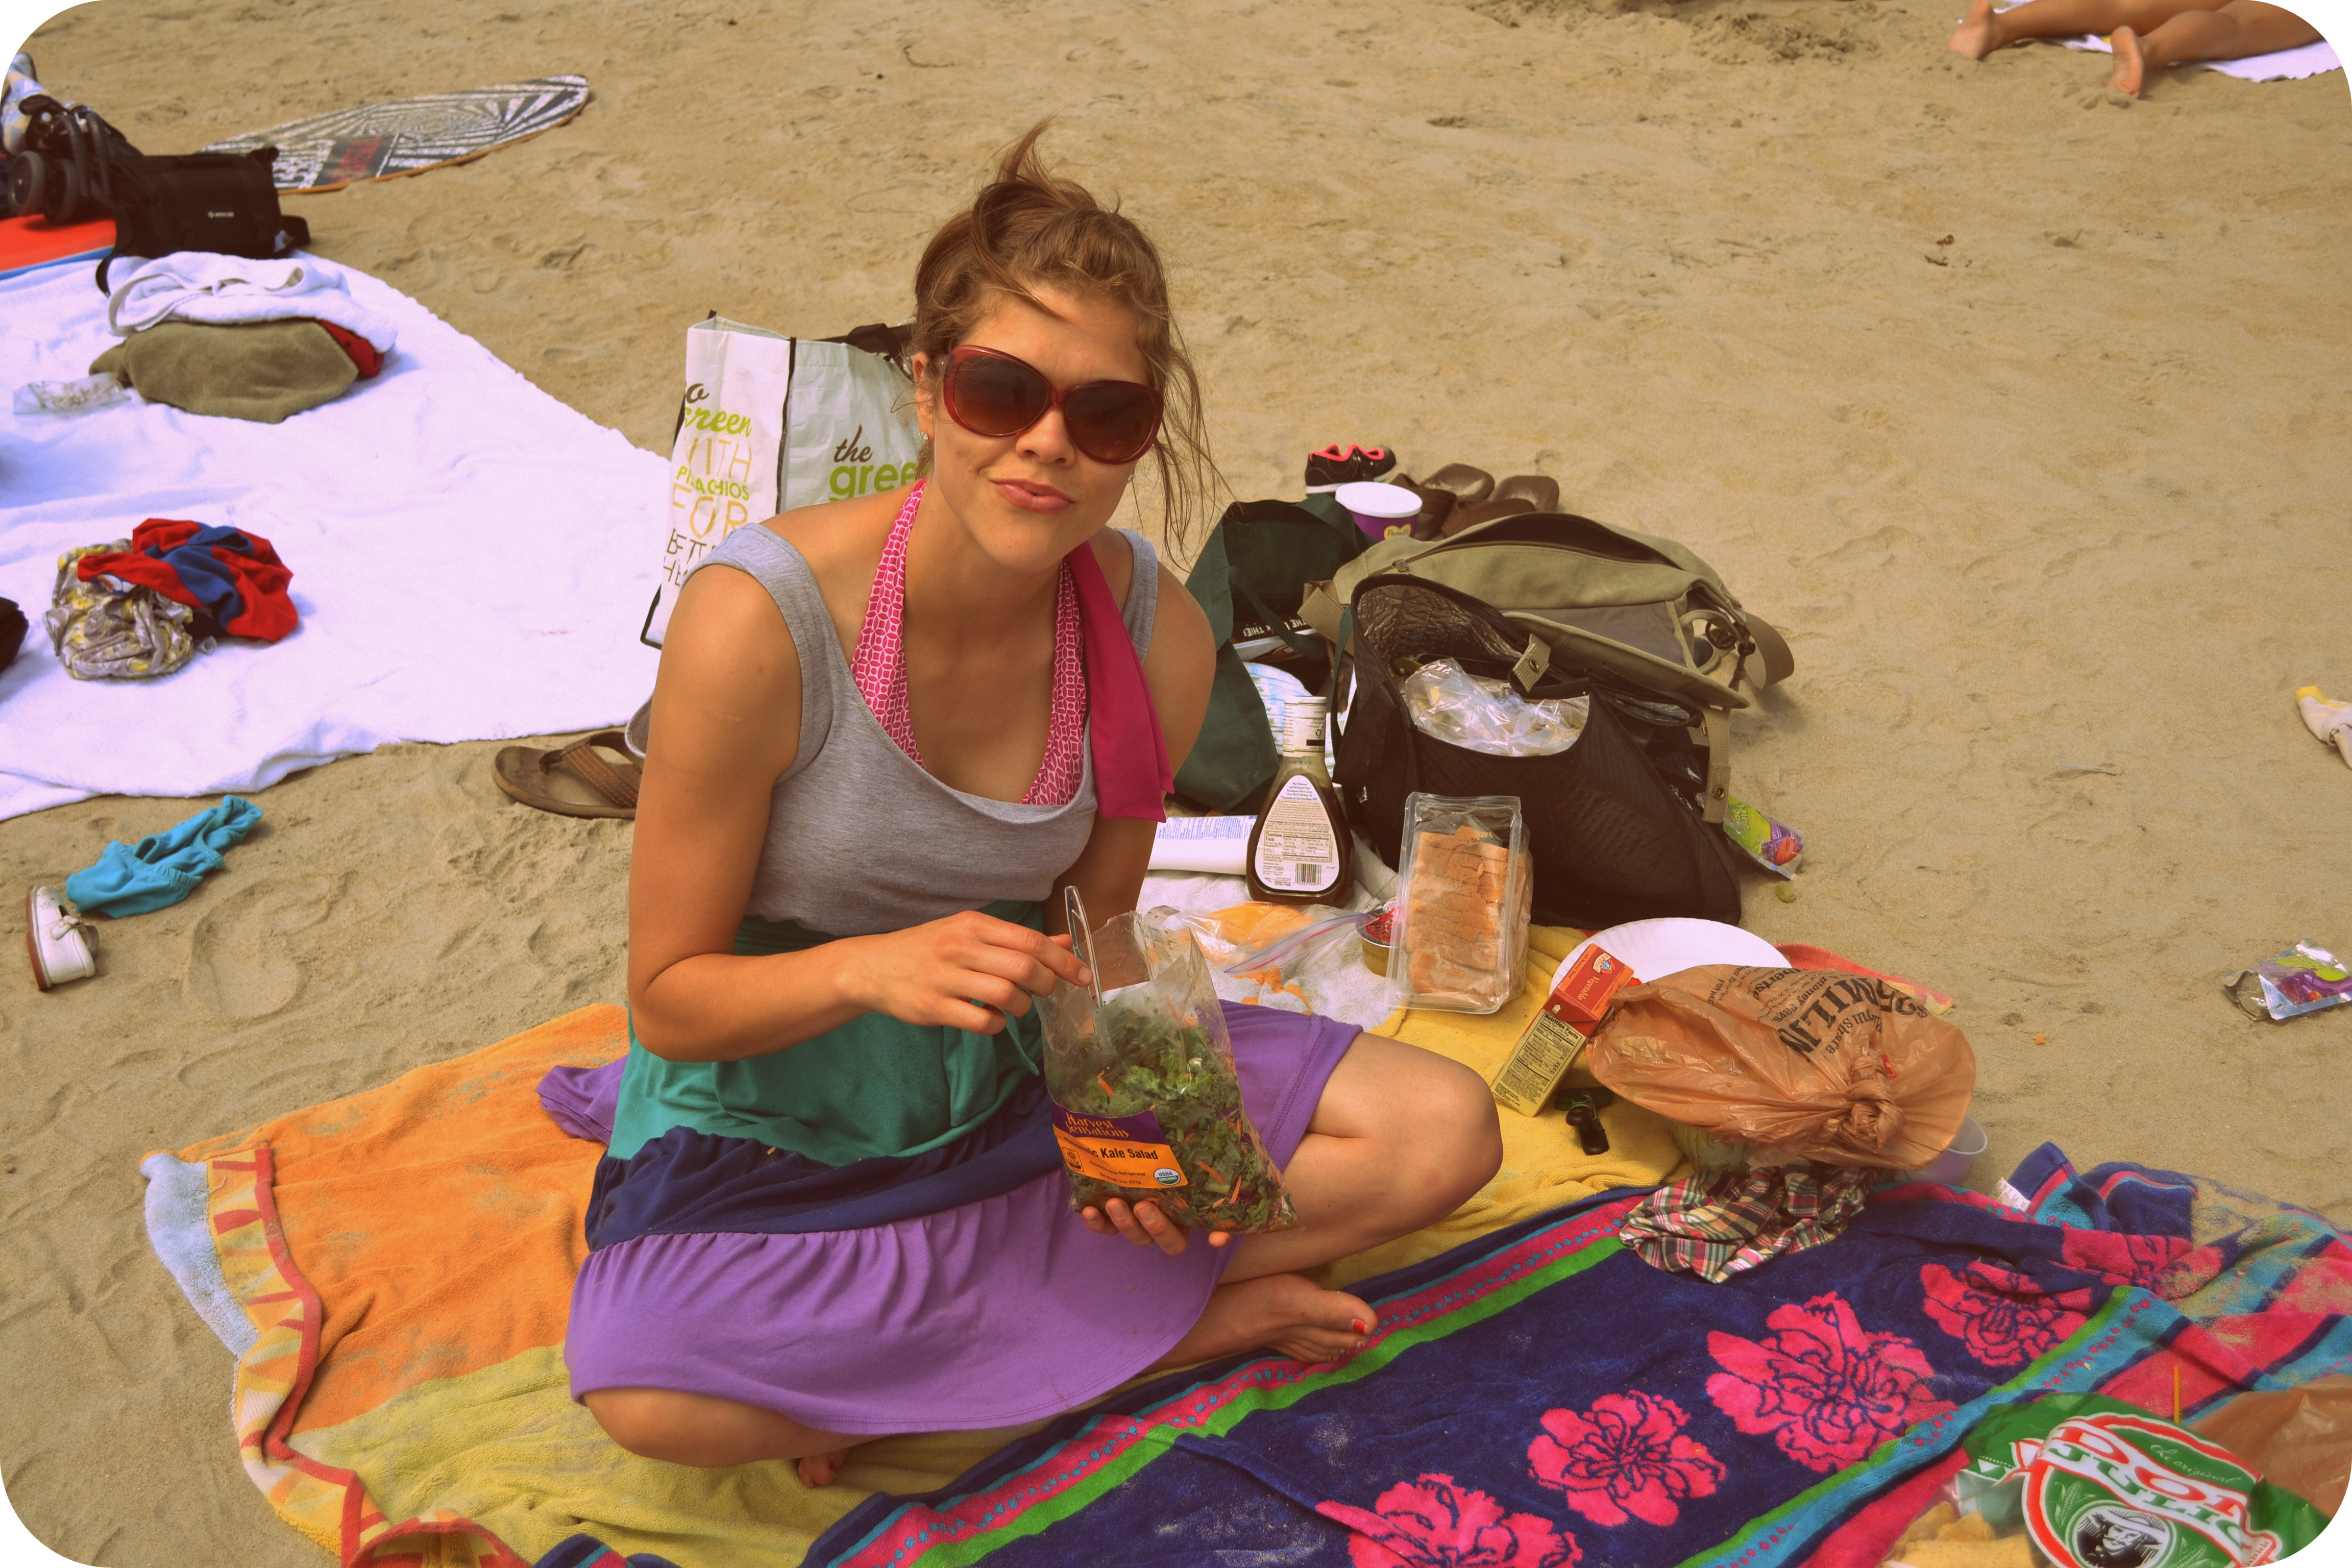 Eating Lunch On The Beach Janae Bring Joy